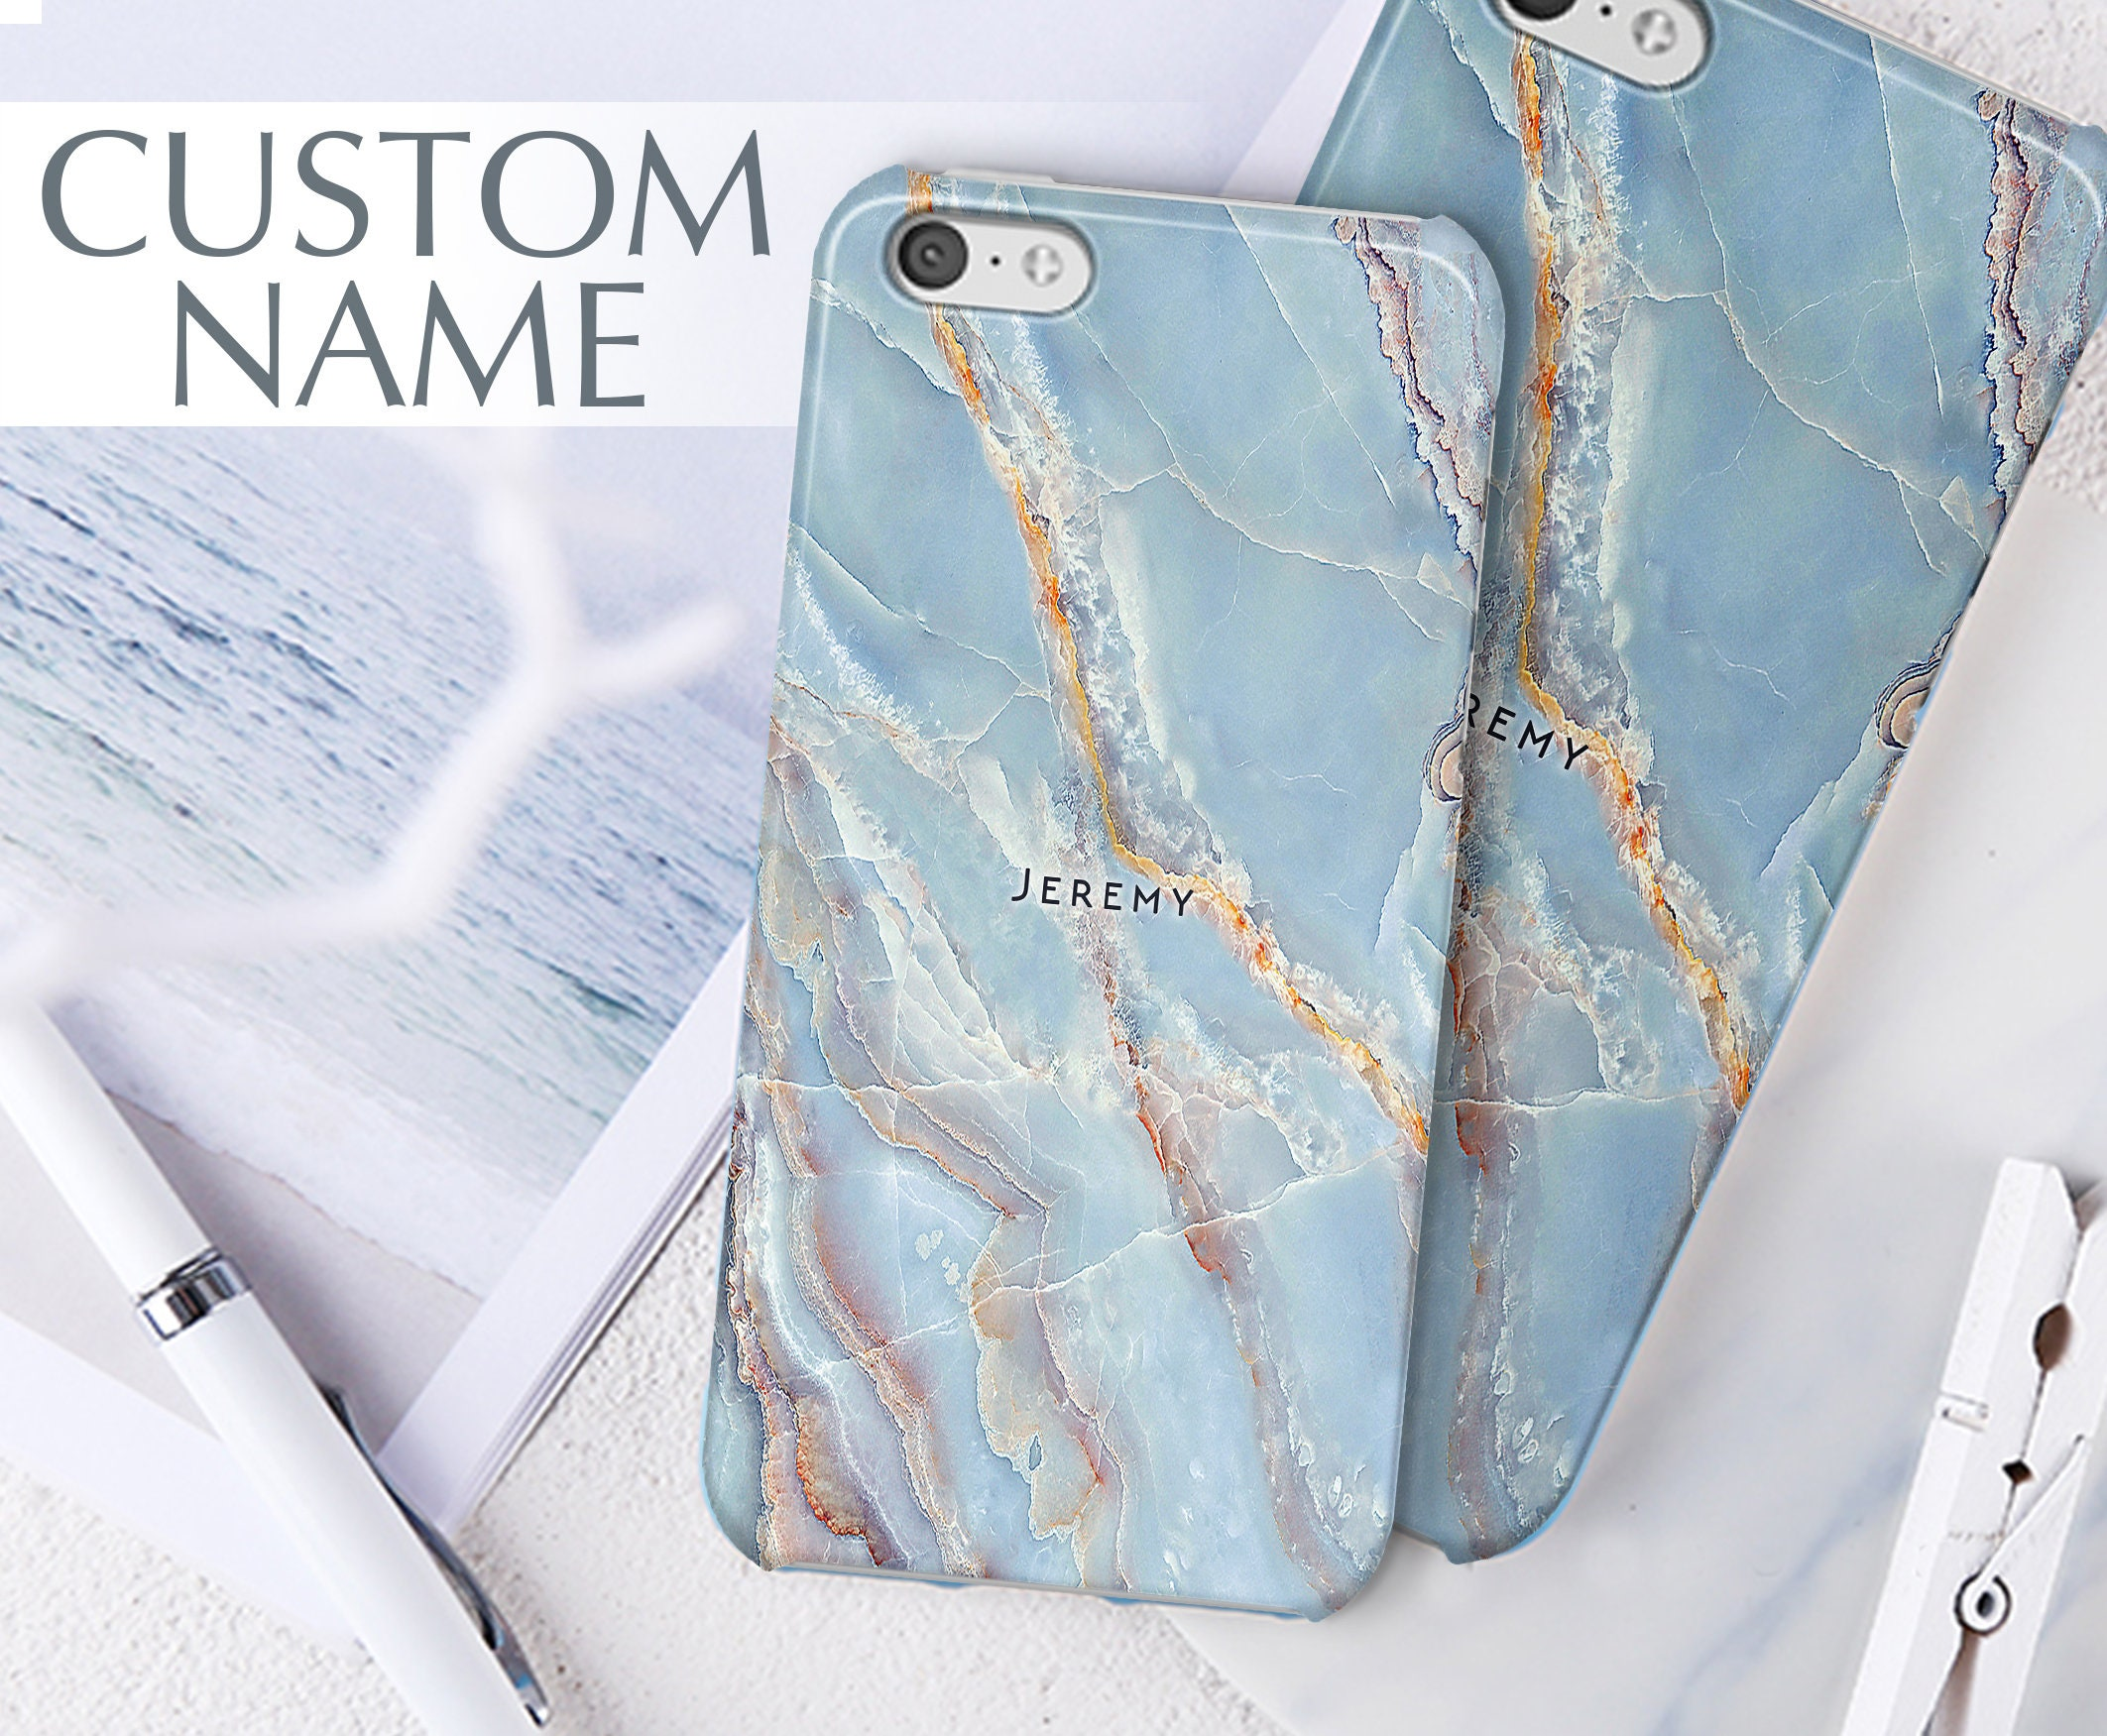 new products 3581c cdd7a Sony Xperia Z5 case, BLUE marble, sony z5 premium case, sony xperia z5  compact case, sony xperia xz premium case, sony xperia xa1 case 154